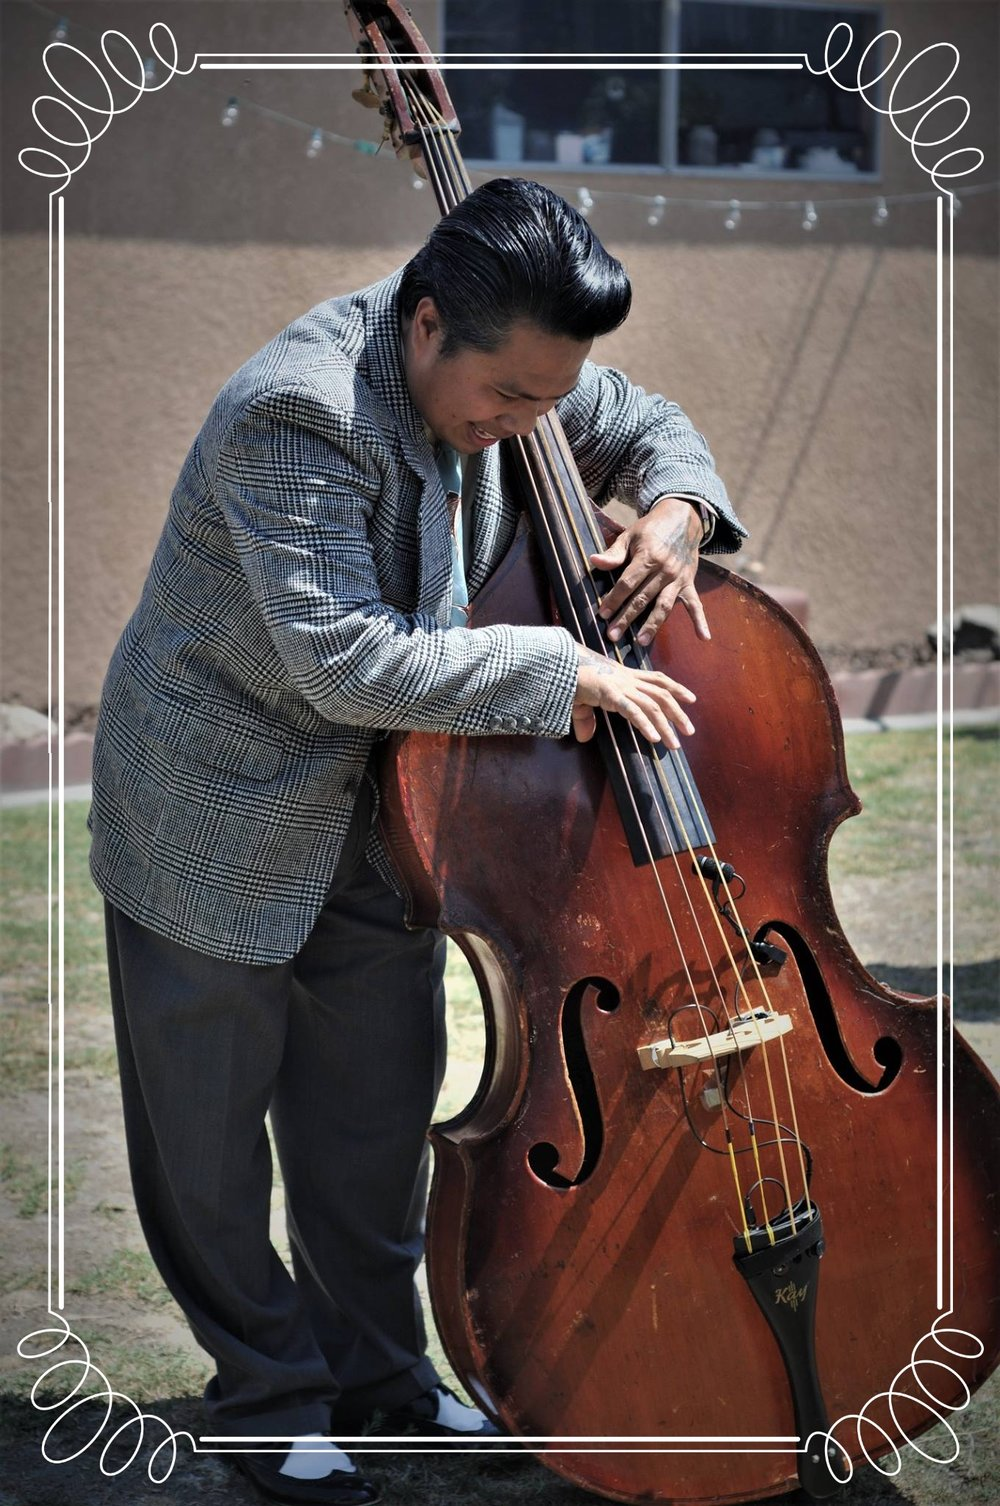 Lakshmi ramirez - Lakshmi Ramirez is a Professional Upright Bassist. He attended the Conservatory of Music, Major in Double Bass, at the University of Santo Tomas and completed London Trinity Jazz with Distinction. He started playing professionally with Manila Philharmonic Orchestra starting 2001. But his love for vintage music, culture, and everything in the era of the 20's until the late 50's led him towards swing, jump blues, rockabilly, doo wop, trad jazz, western swing, boogie woogie, big band and all of the great fun music during that era. This brought him to perform in different places locally and internationally.